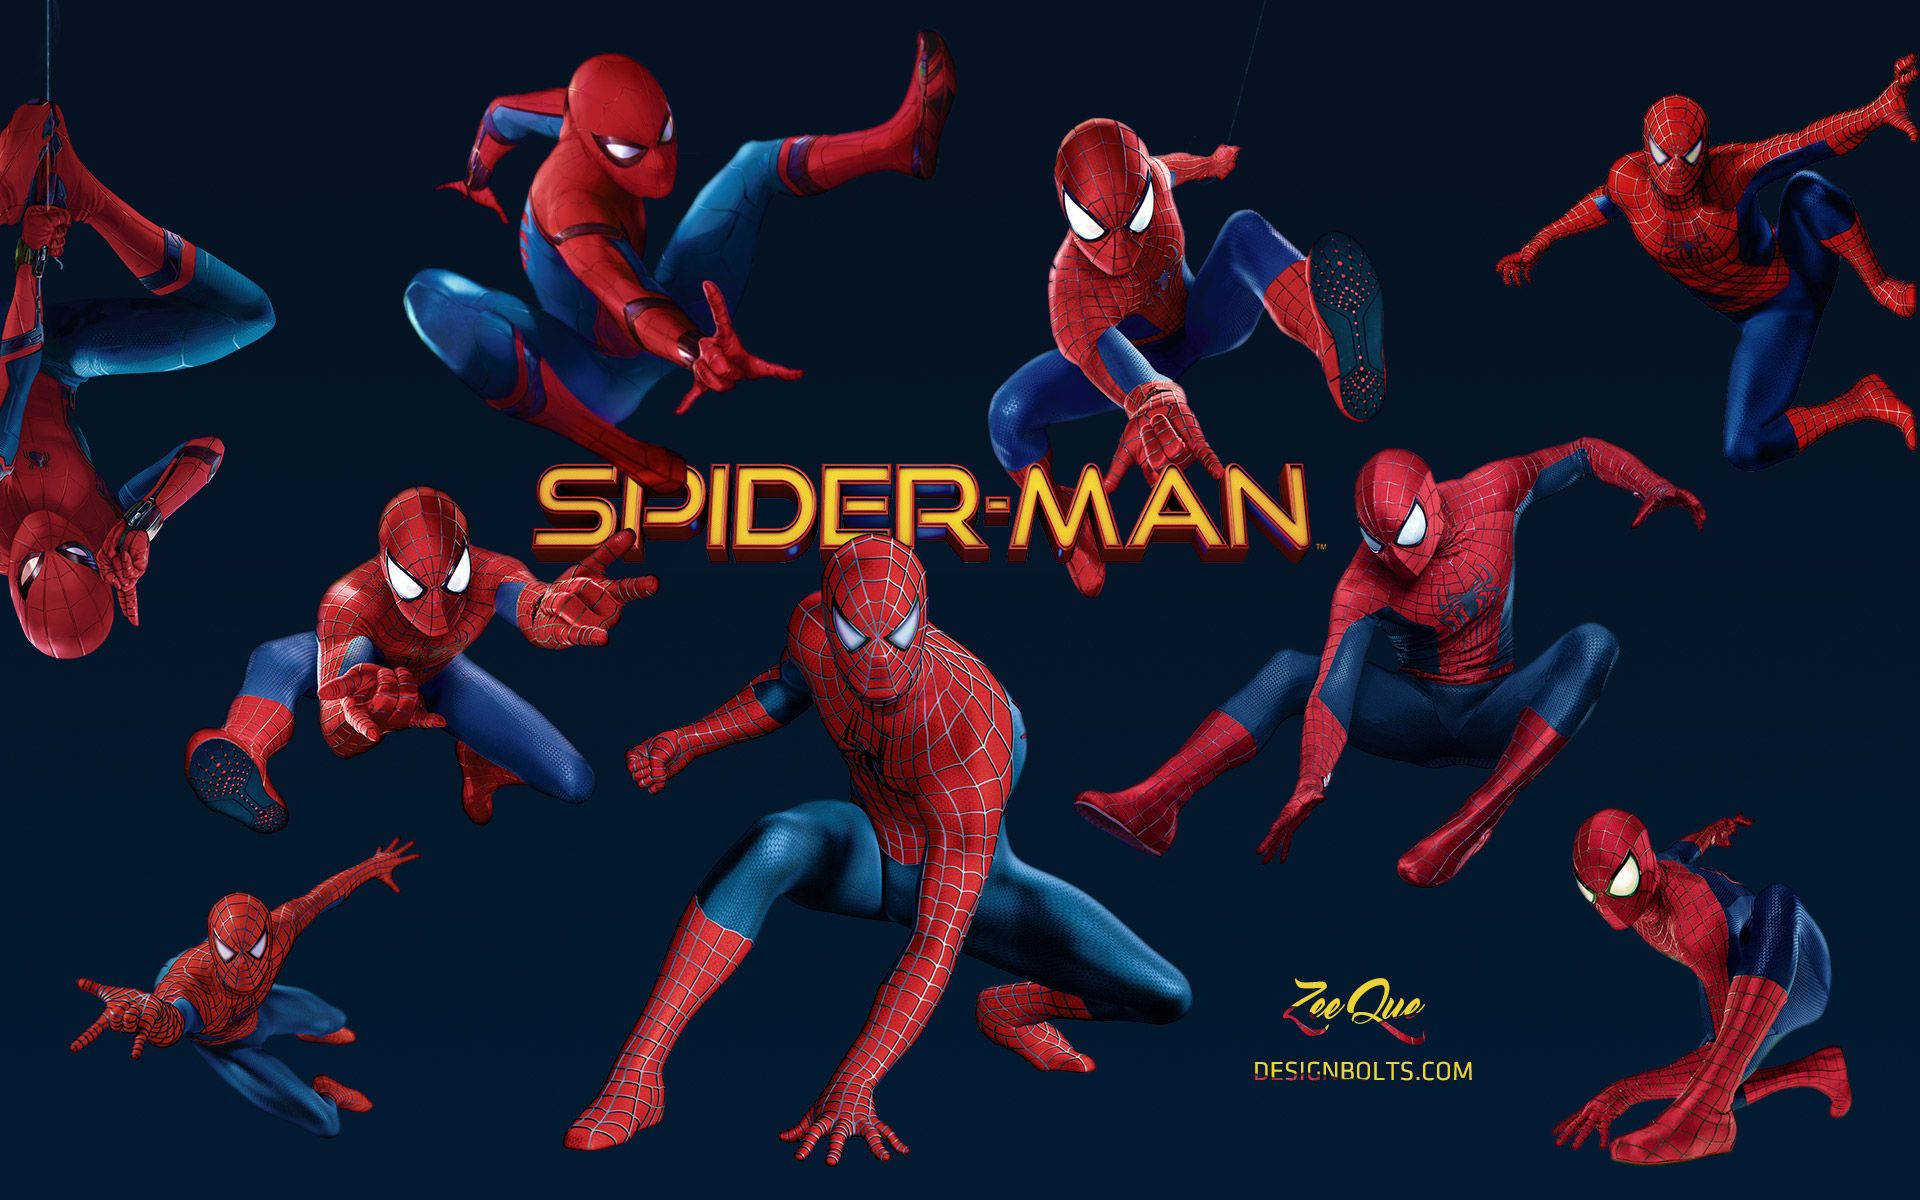 Spider Man Homecoming 2017 Movie Desktop Wallpapers Hd Quality In 2020 Spiderman Spider Man Homecoming 2017 Spiderman Homecoming